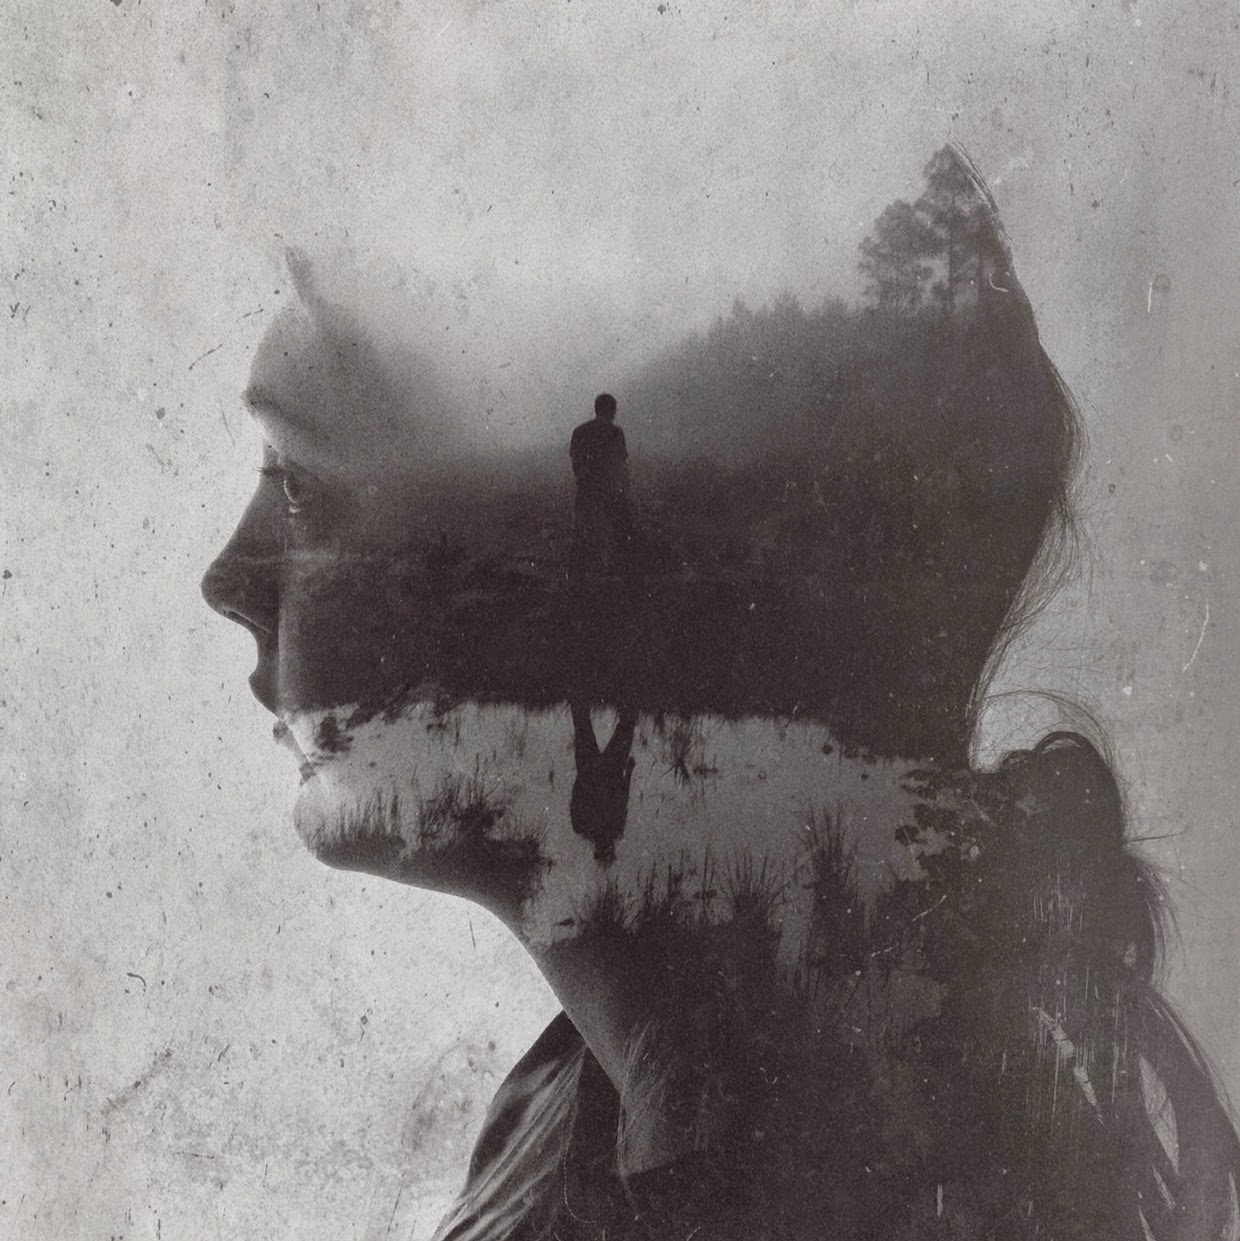 17-Brandon-Kidwell-Stories-in-Double-Exposure-Portrait-Photographs-www-designstack-co